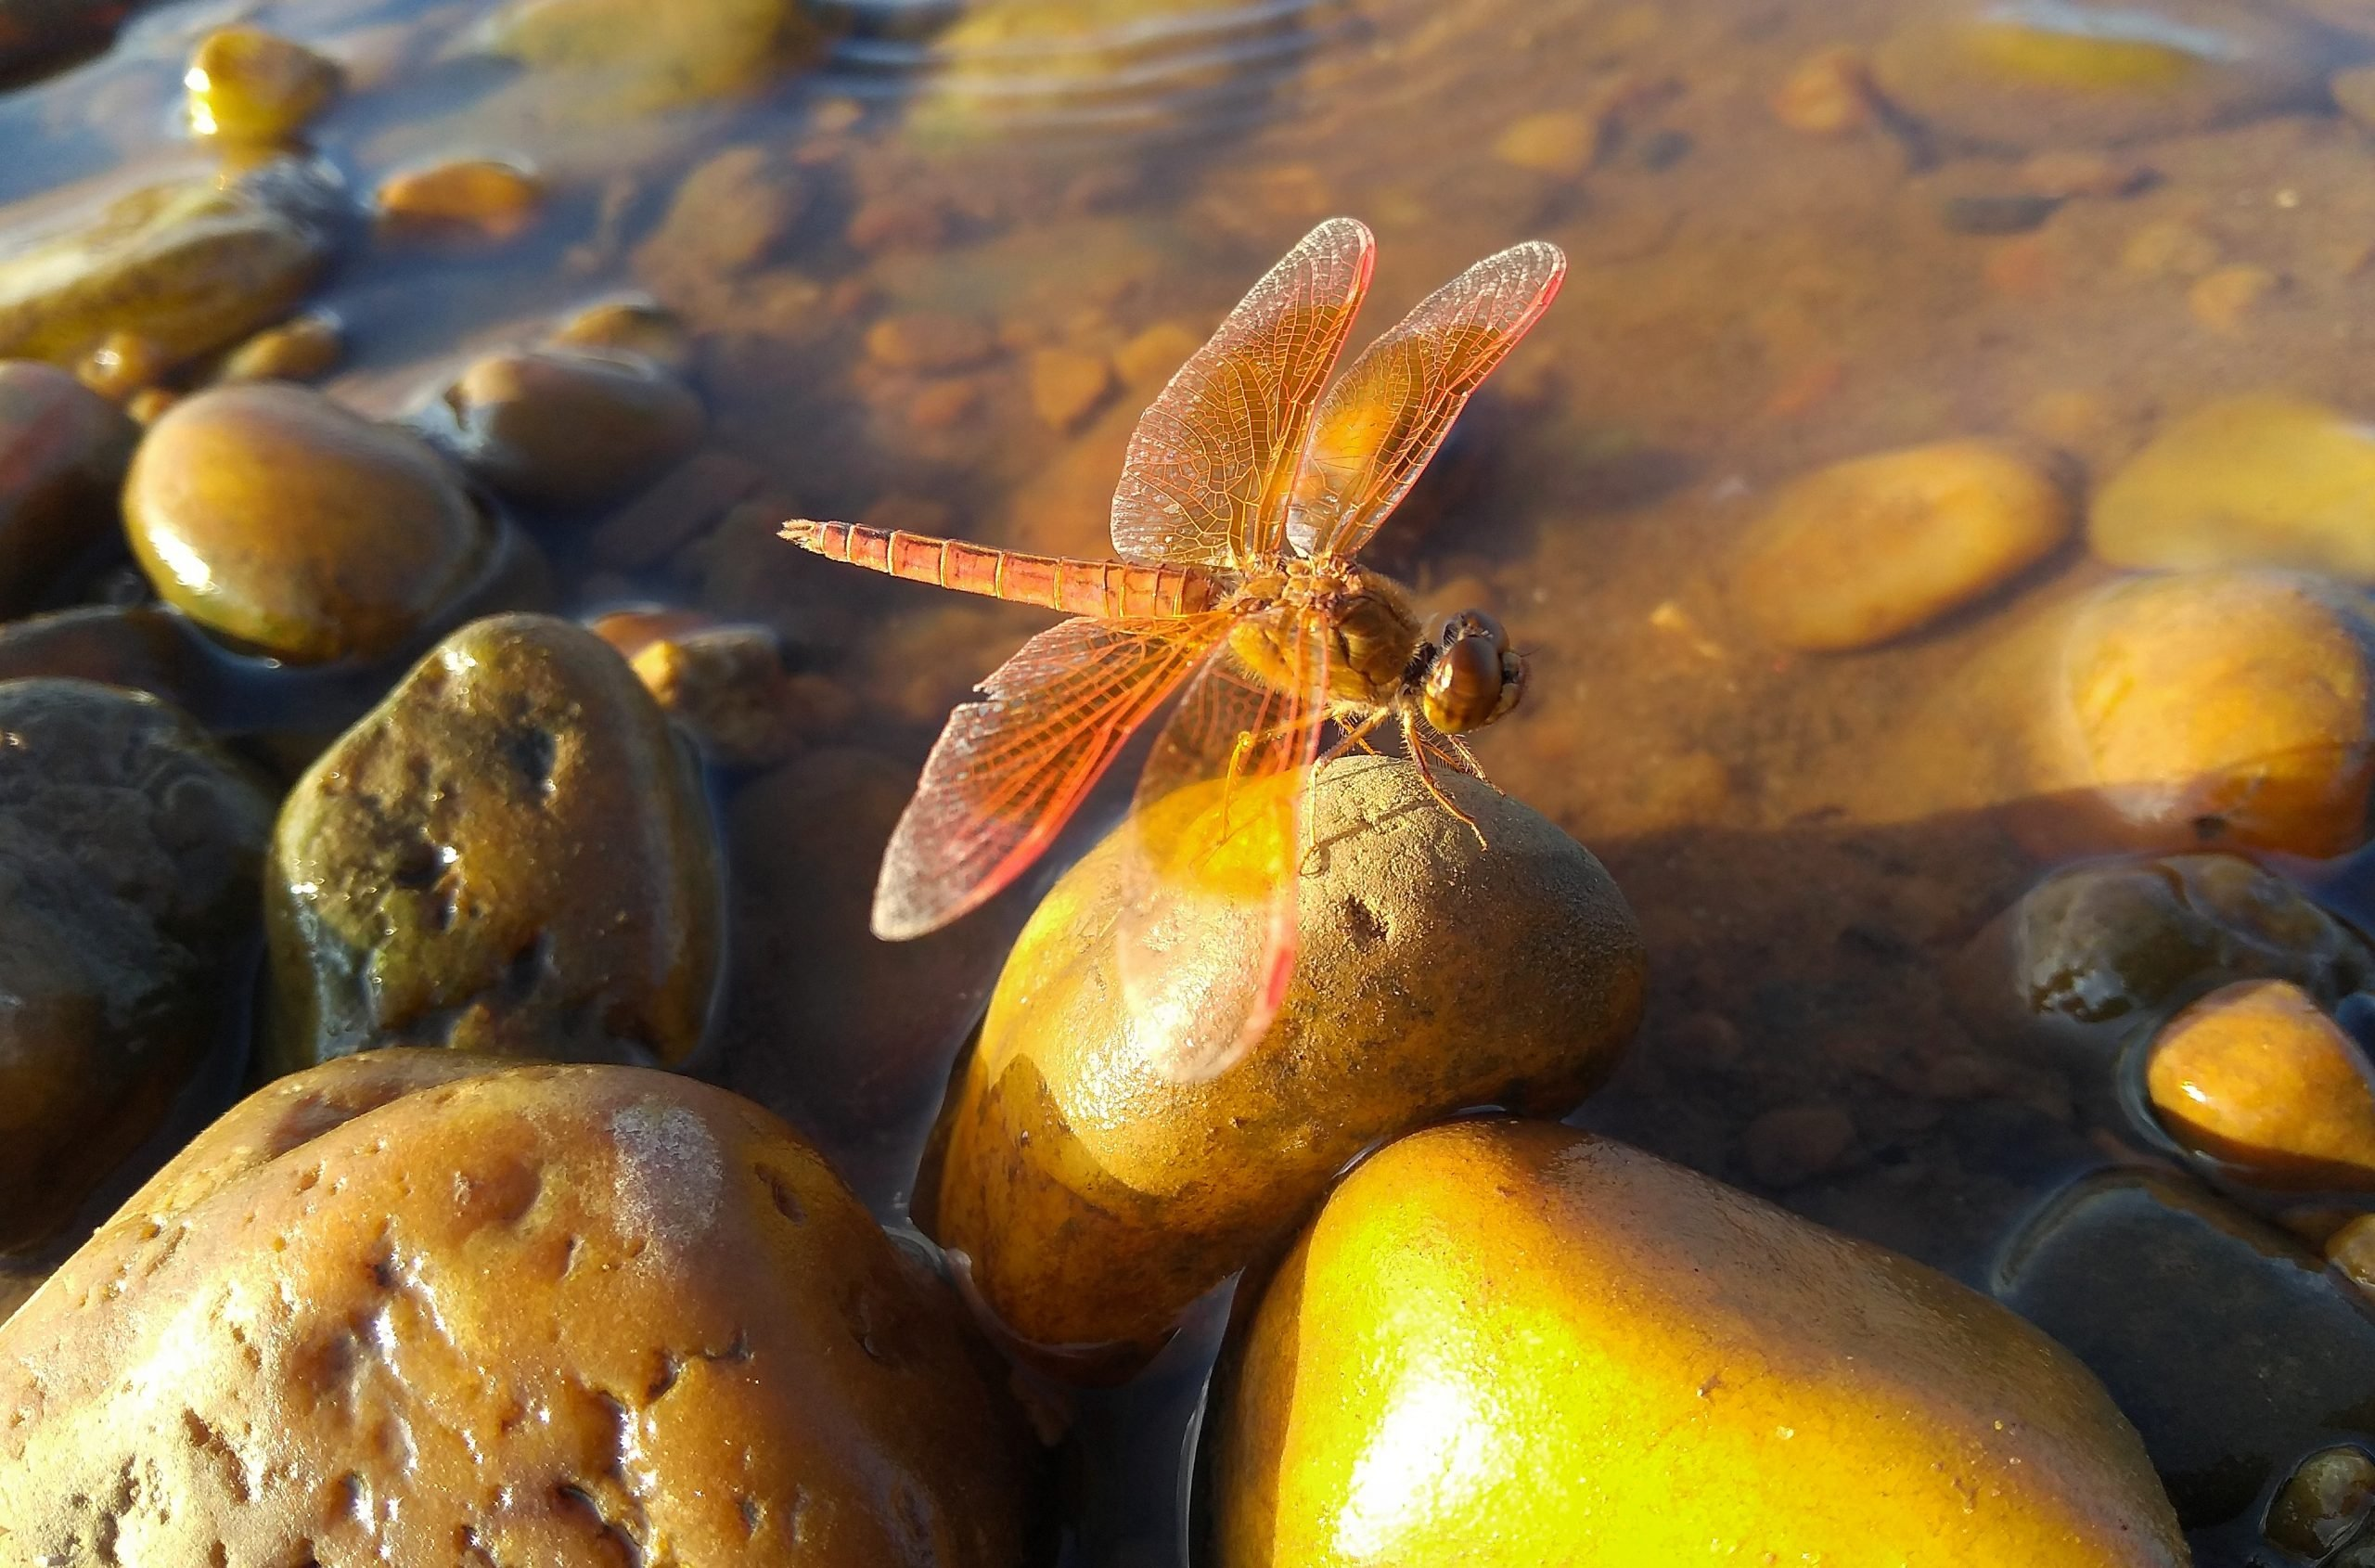 Dragonfly in River Stones